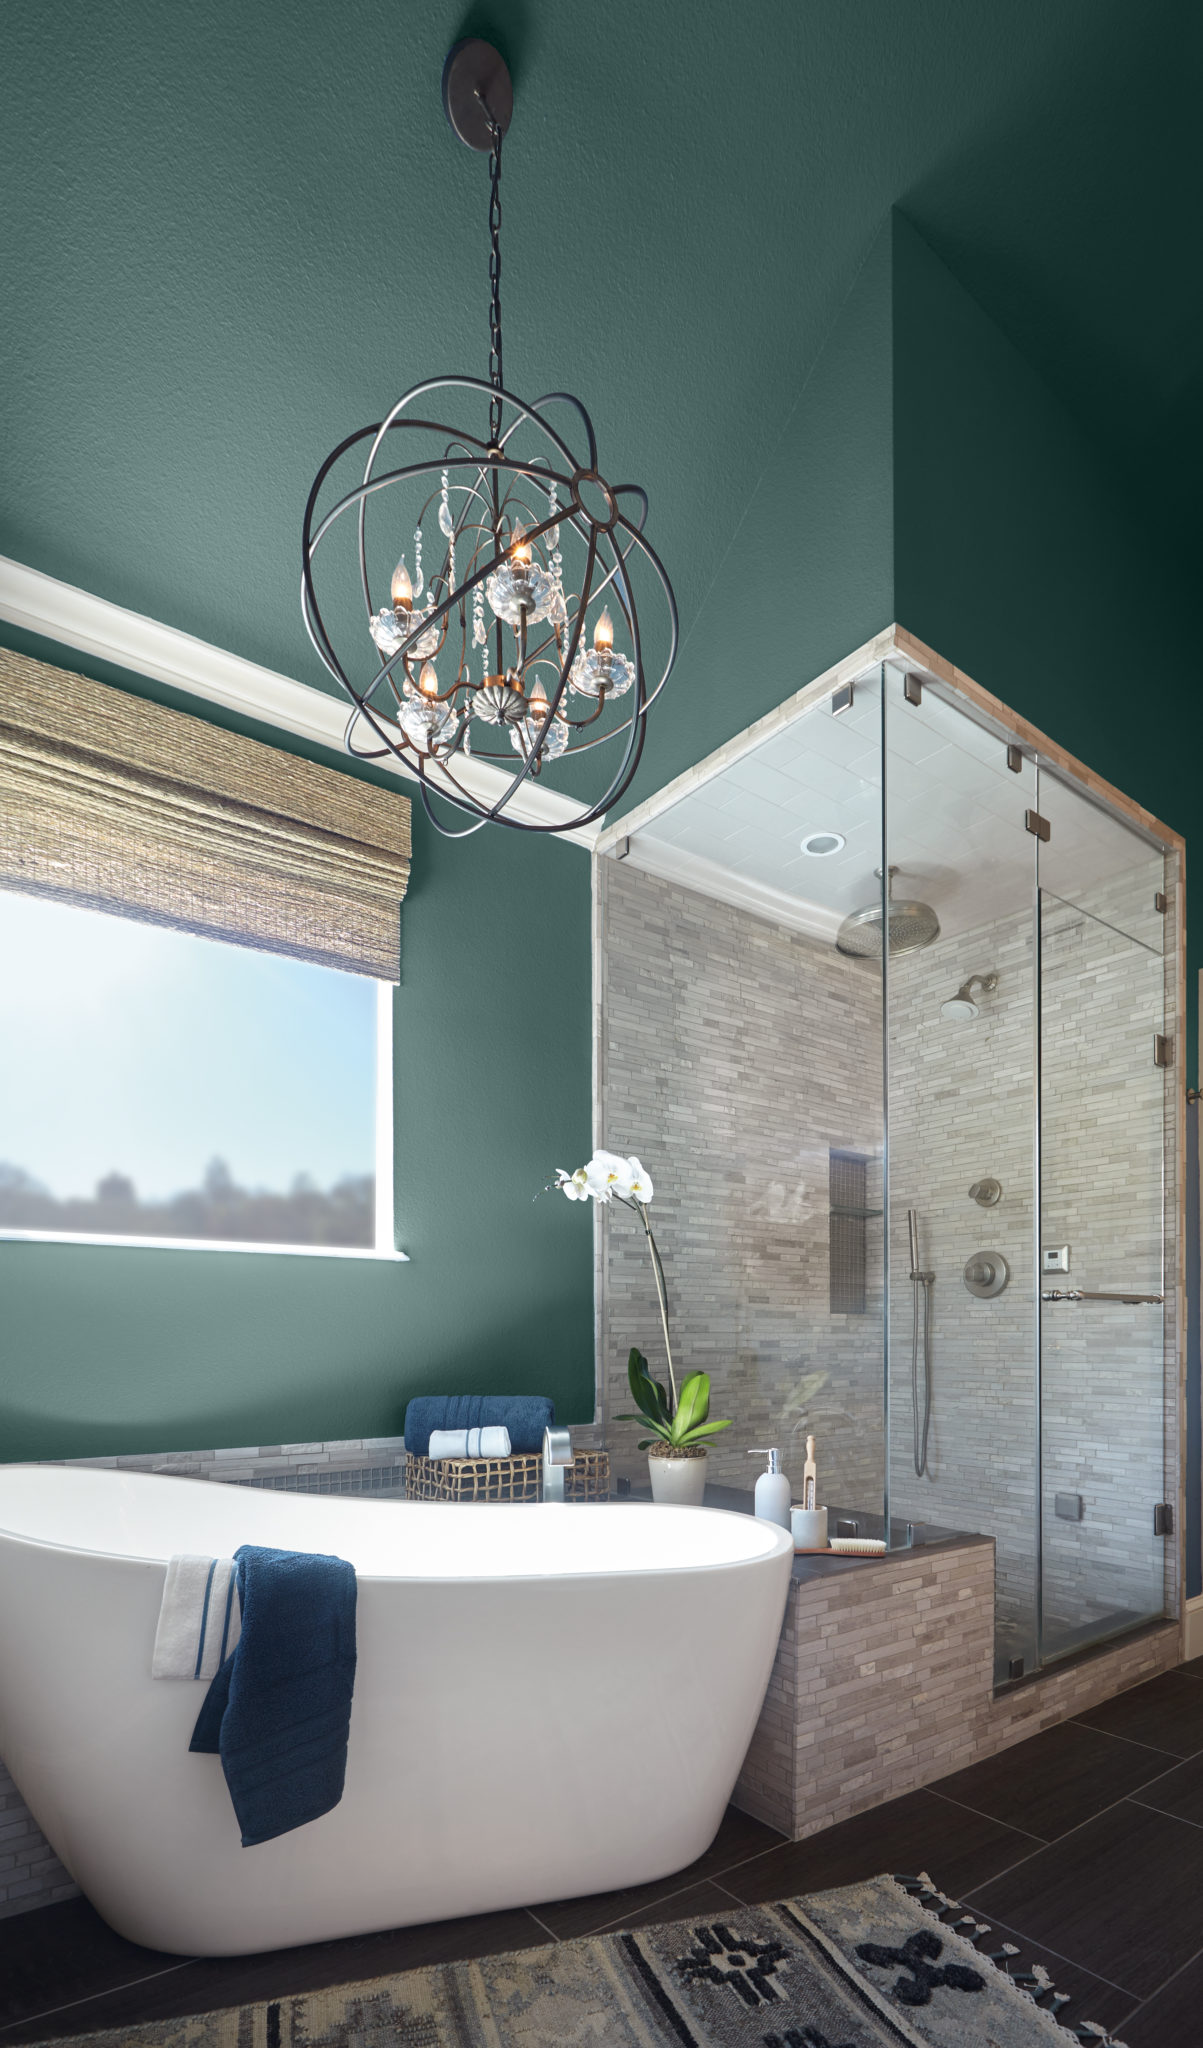 IMAGE: via Behr feat. paint color 'Dragonfly' from Behr